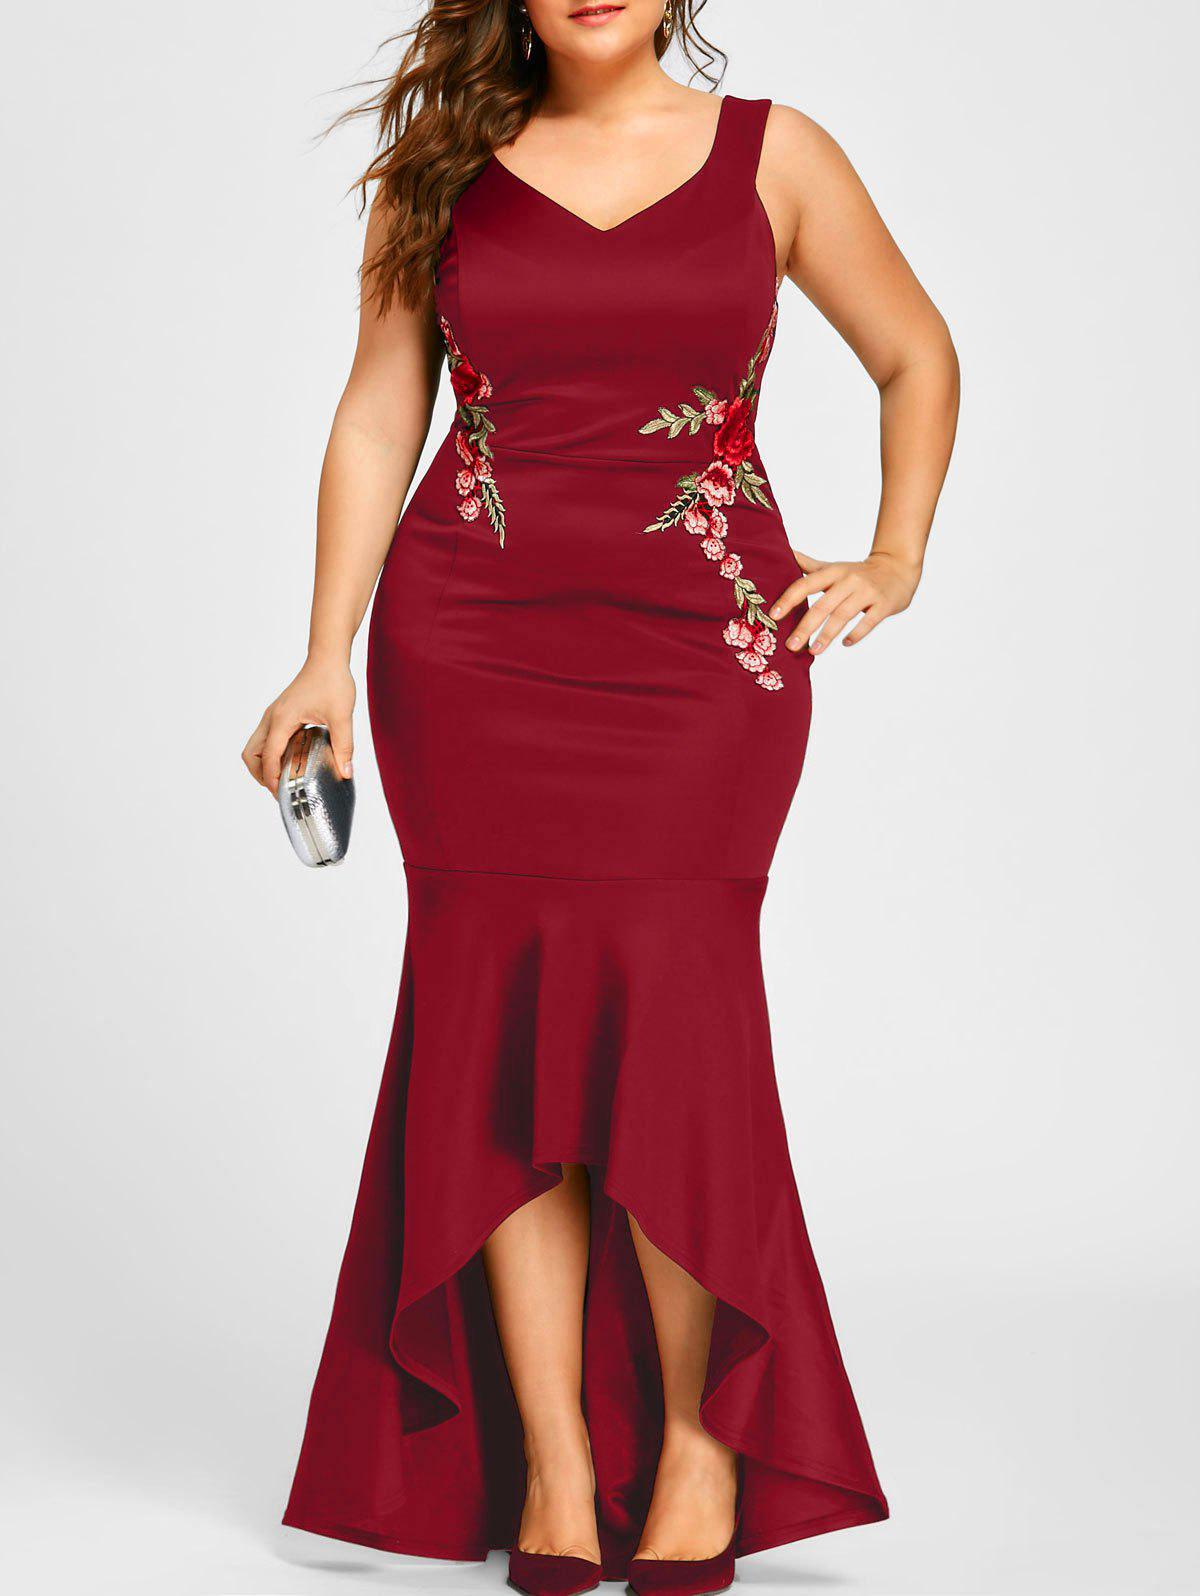 Plus Size Sleeveless Party Mermaid Engagement DressWOMEN<br><br>Size: 4XL; Color: RED; Style: Brief; Material: Polyester,Spandex; Silhouette: Trumpet/Mermaid; Dresses Length: Floor-Length; Neckline: V-Neck; Sleeve Length: Sleeveless; Embellishment: Appliques,Embroidery; Pattern Type: Floral; With Belt: No; Season: Fall,Spring,Summer; Weight: 0.5500kg; Package Contents: 1 x Dress;